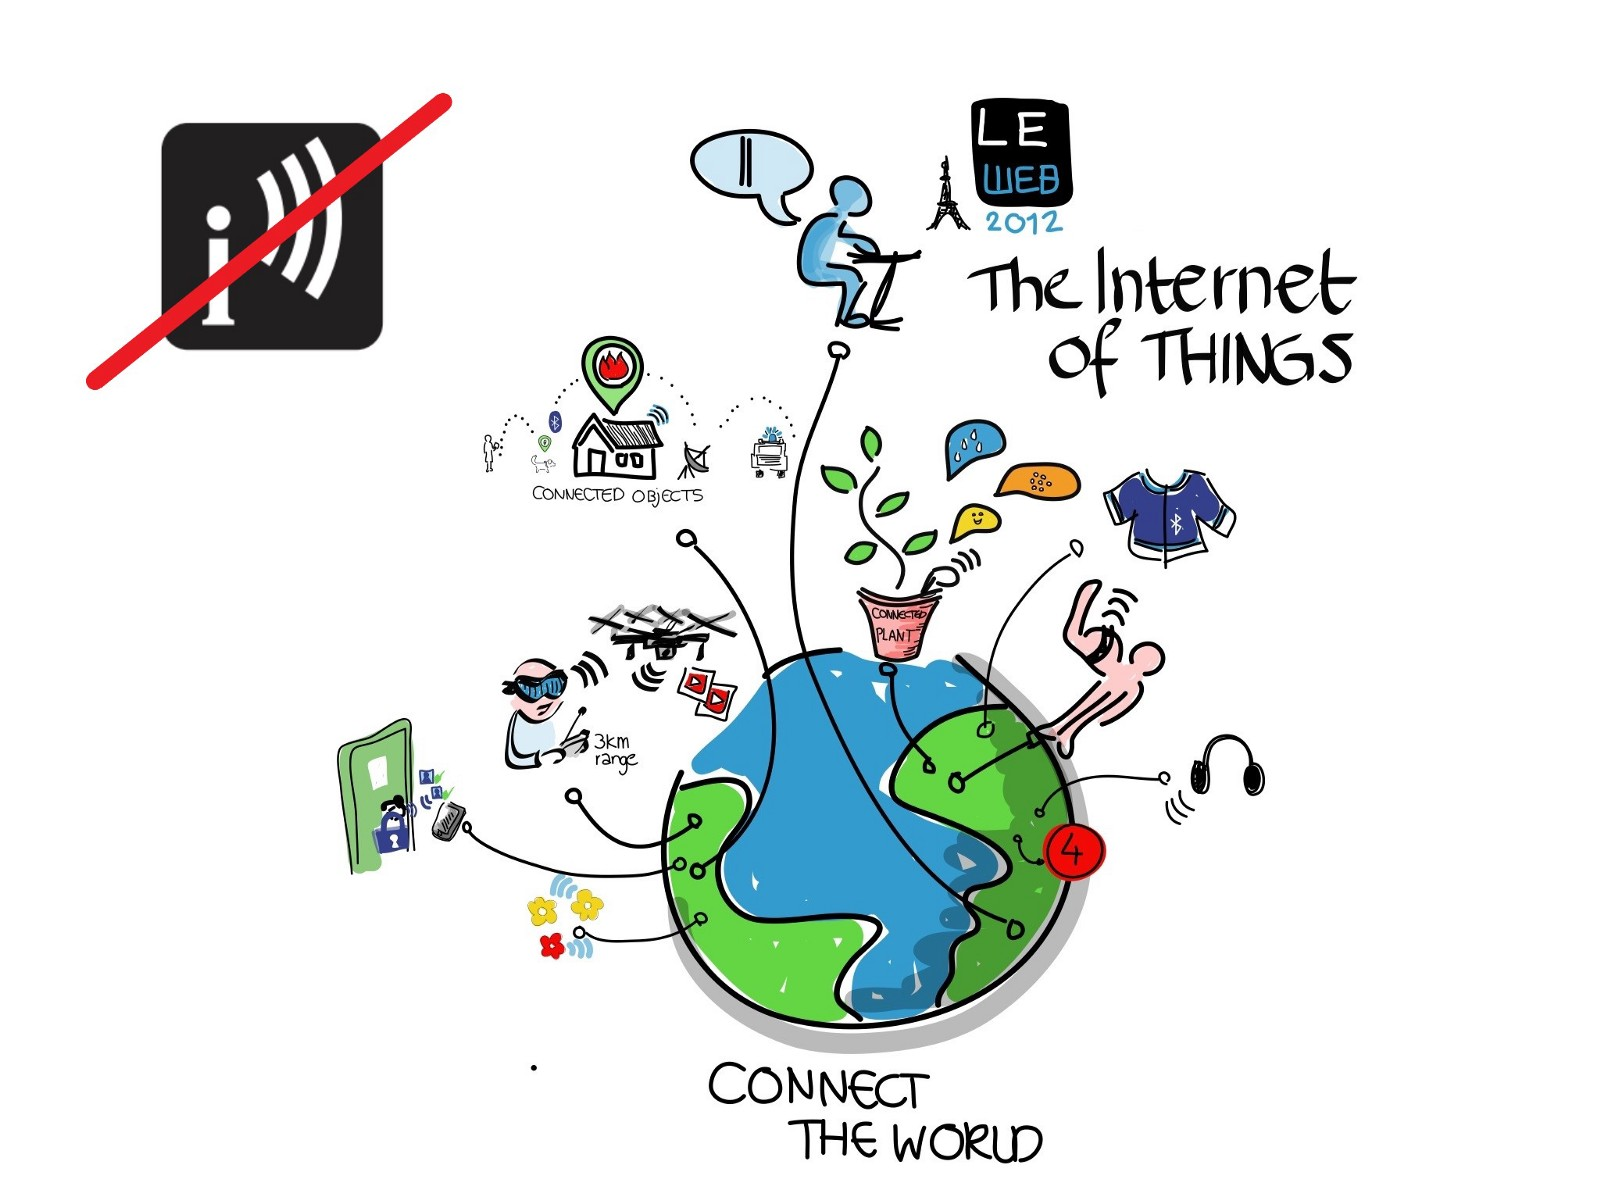 /iot-without-internet-how-does-it-affect-its-functionality-275cff90a018 feature image